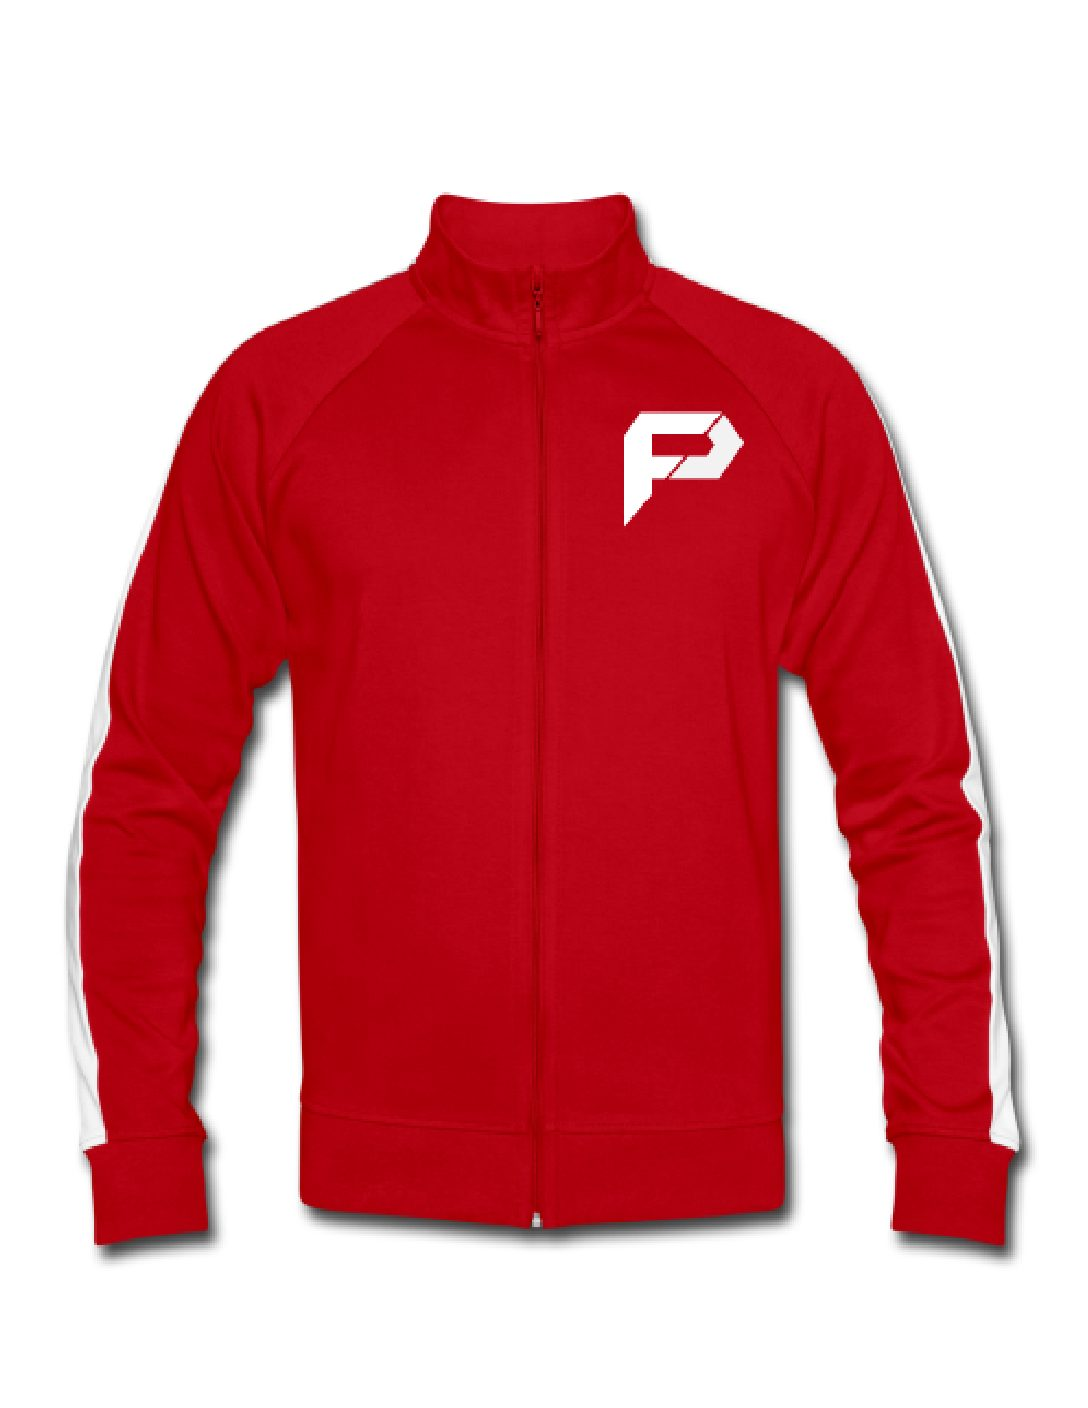 Mens Track top Red Front (3)